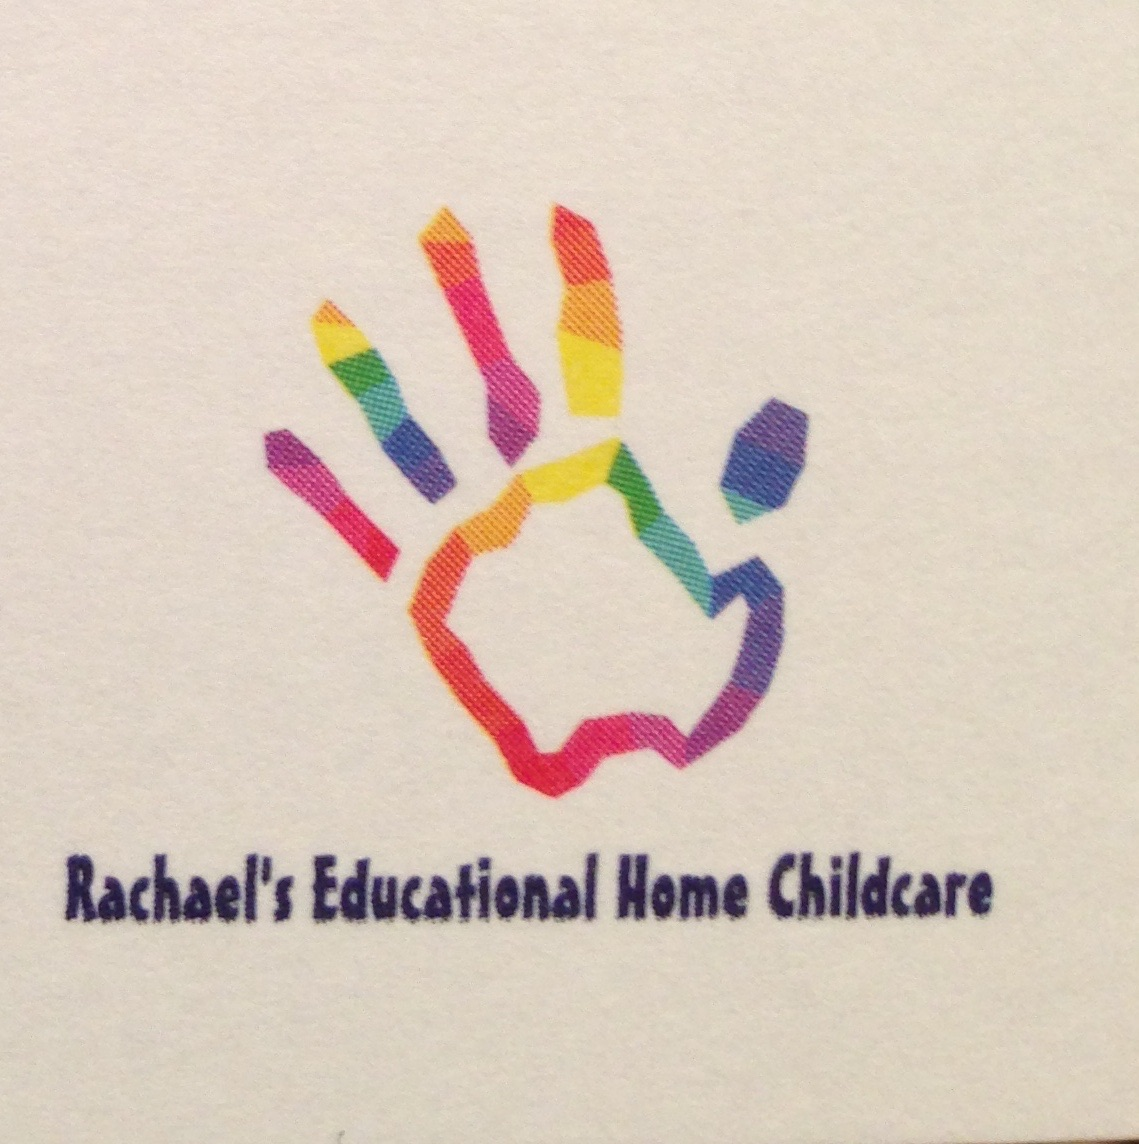 Rachaels Educational Home Childcare